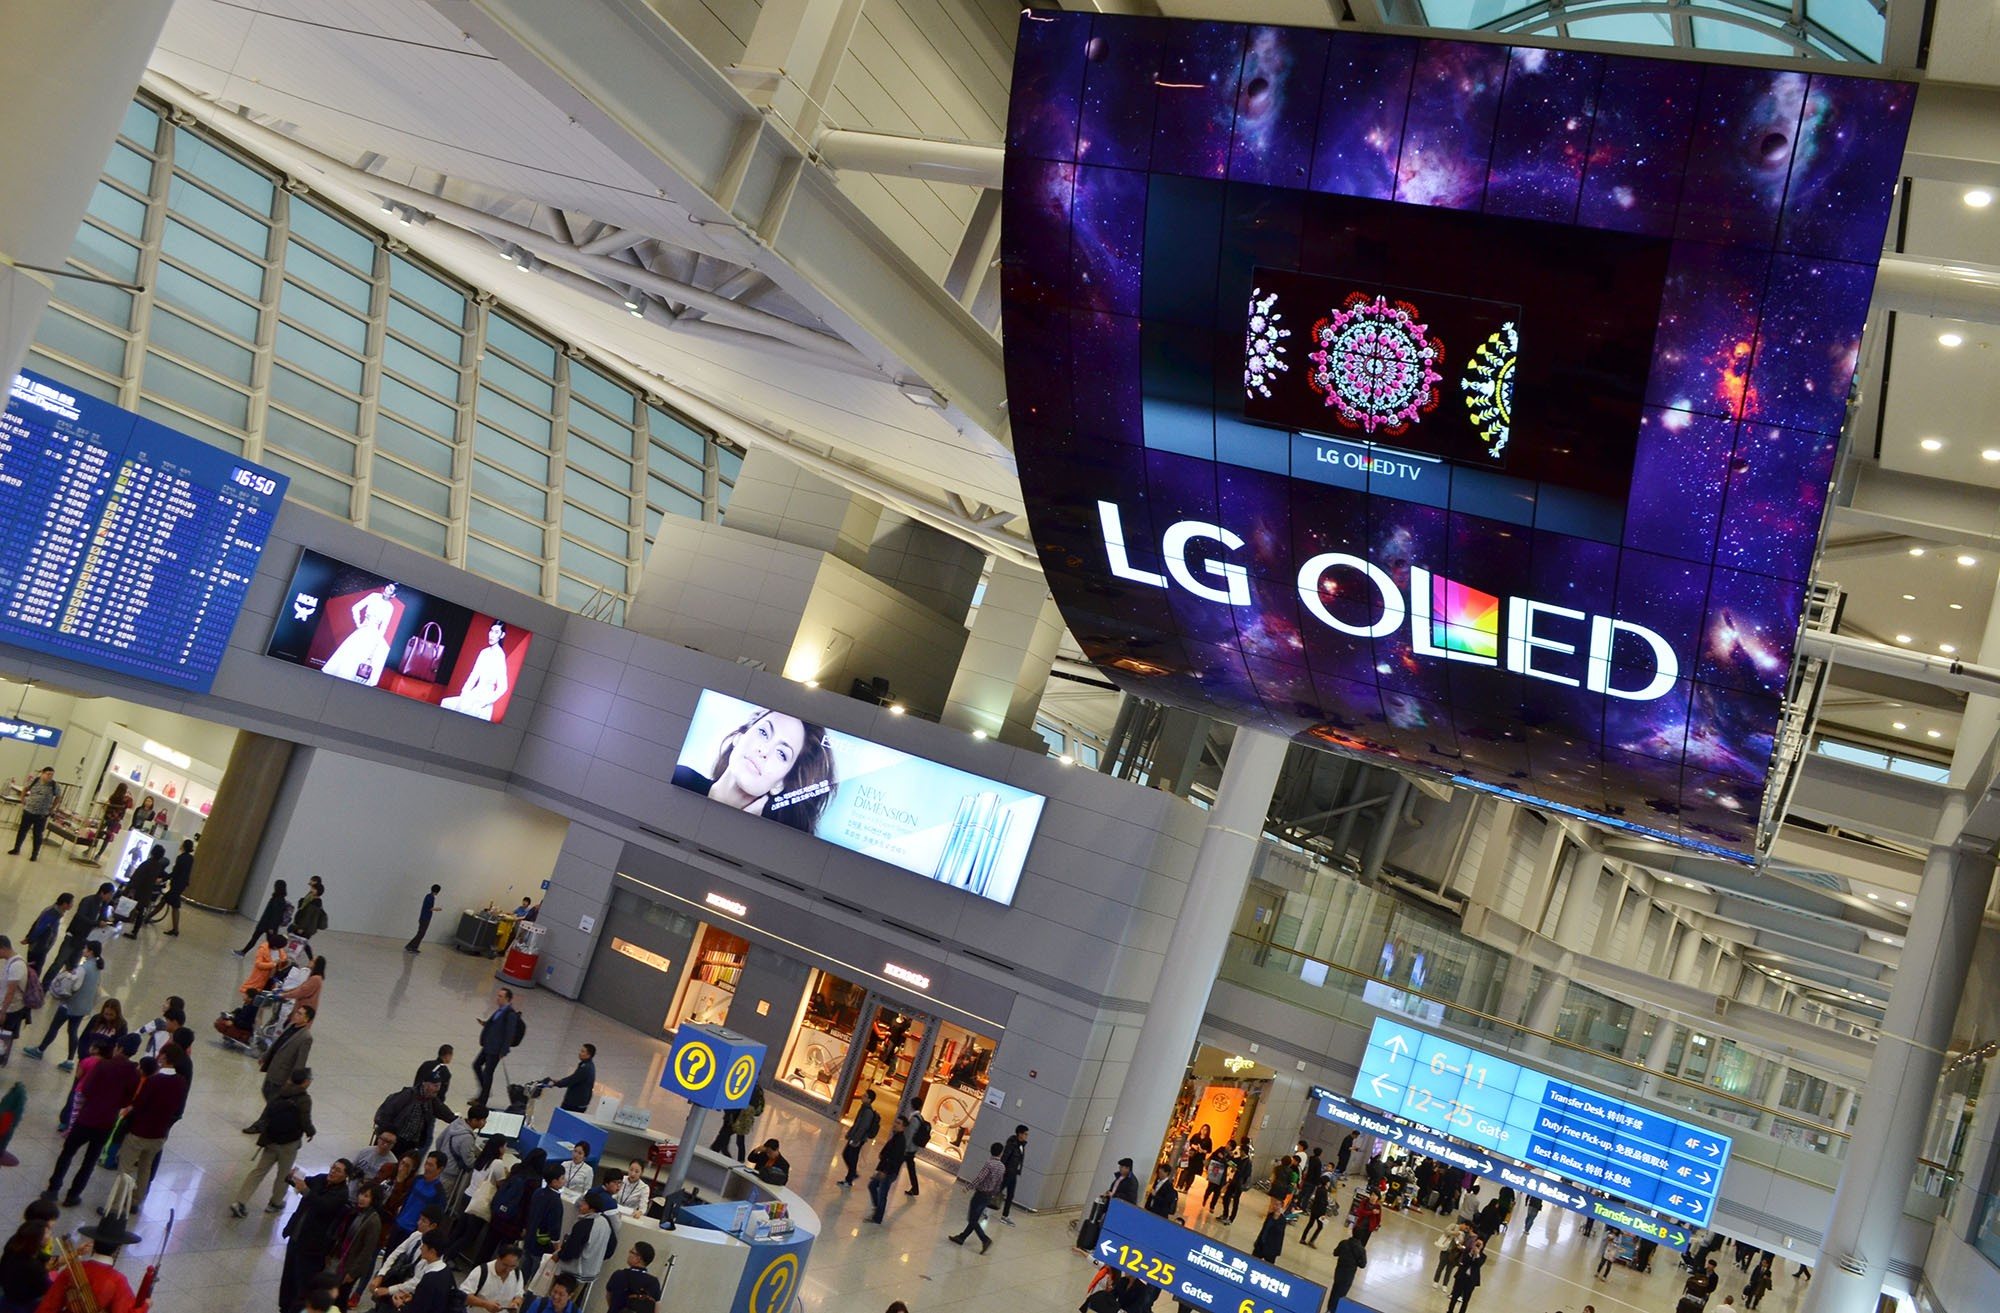 A ceiling installation of LG OLED Signage displaying artwork at Incheon International Airport